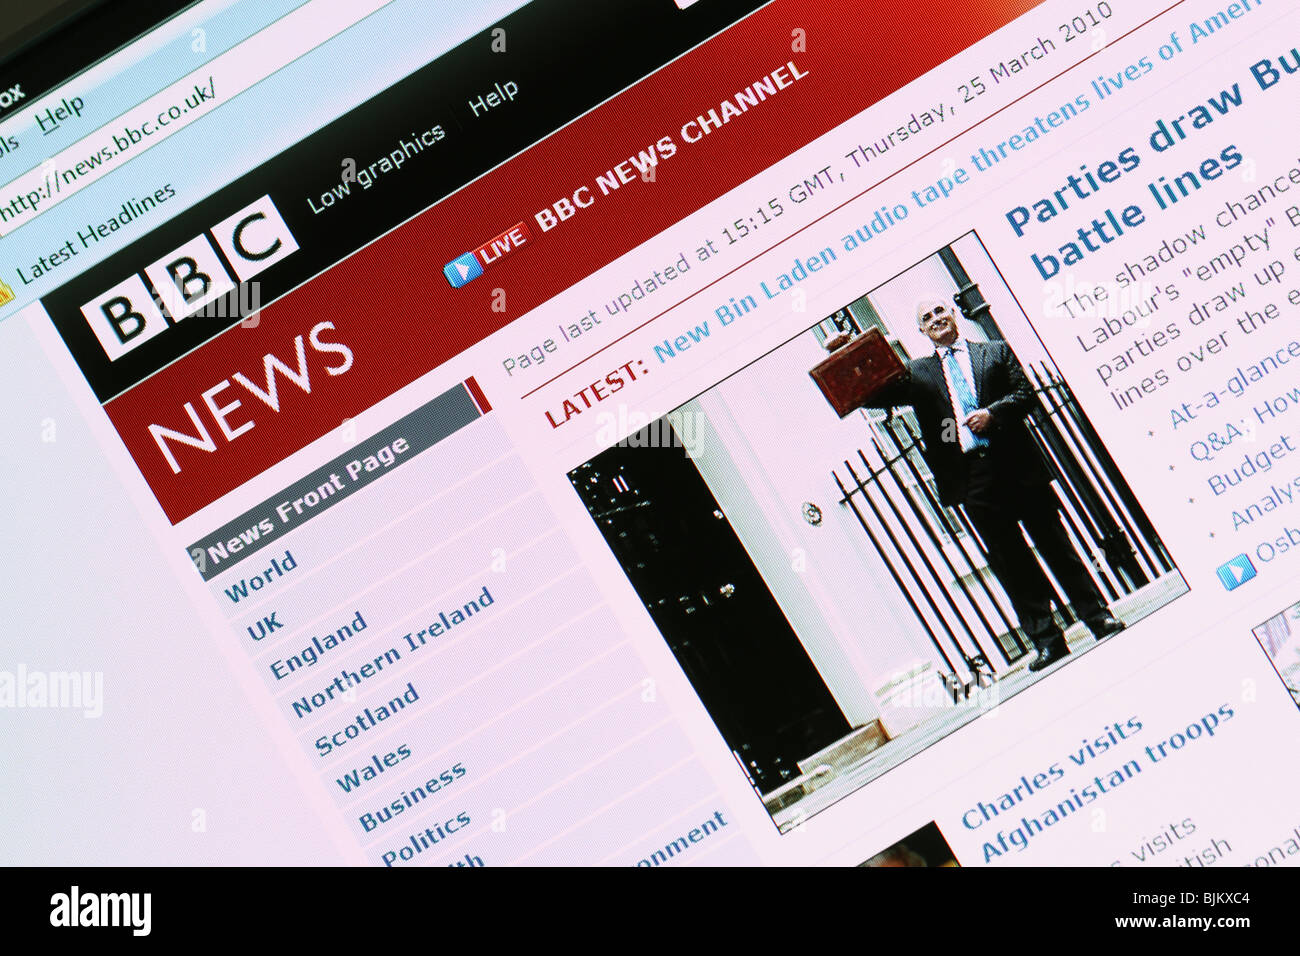 BBC News www front page headlines online web page website - Stock Image